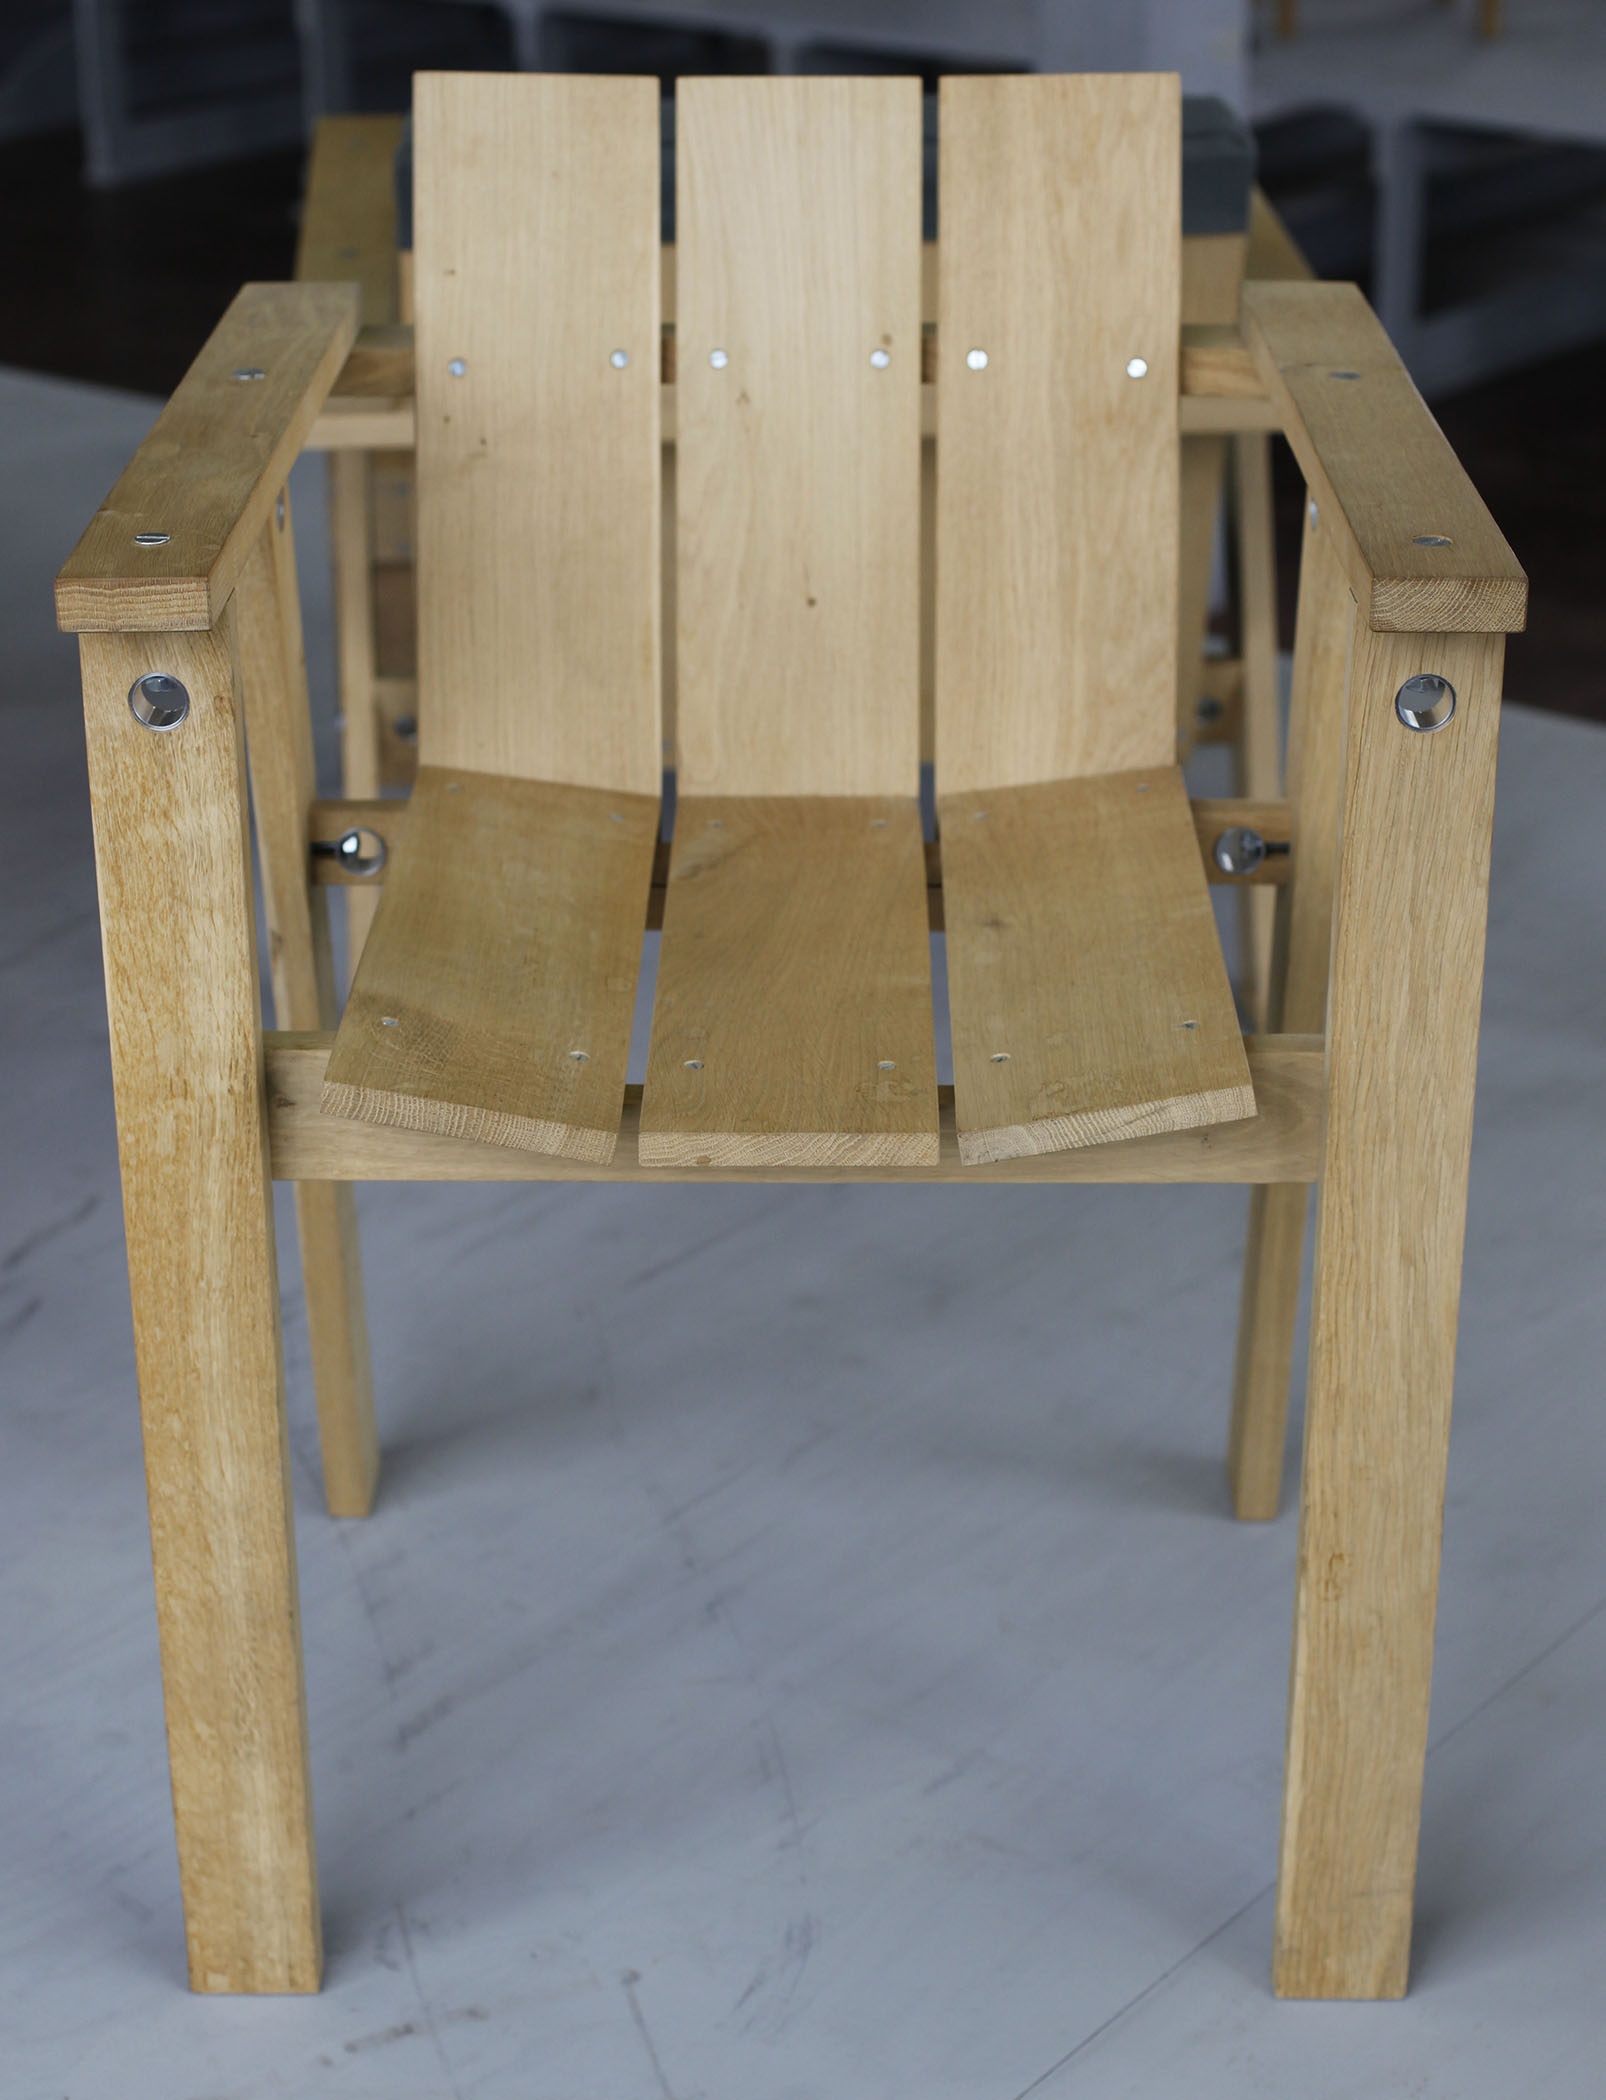 Chair Blog - Chairs, Chair Designers and Chair Manufacturers